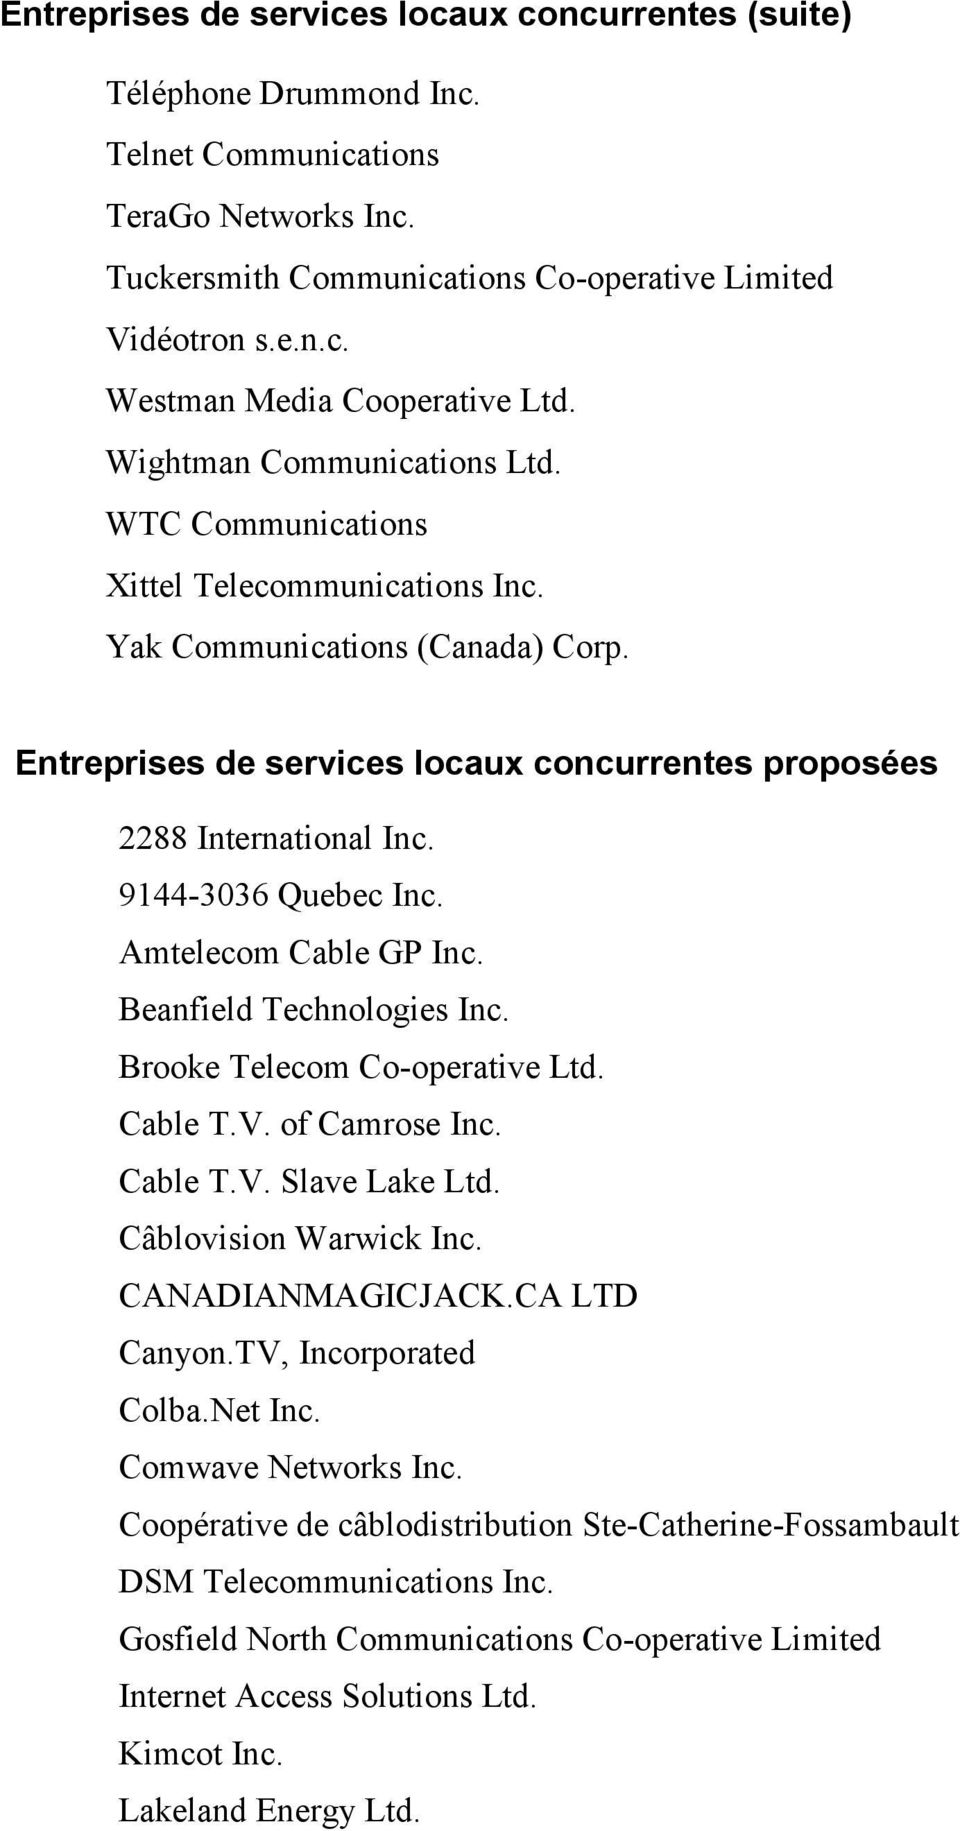 9144-3036 Quebec Inc. Amtelecom Cable GP Inc. Beanfield Technologies Inc. Brooke Telecom Co-operative Ltd. Cable T.V. of Camrose Inc. Cable T.V. Slave Lake Ltd. Câblovision Warwick Inc.